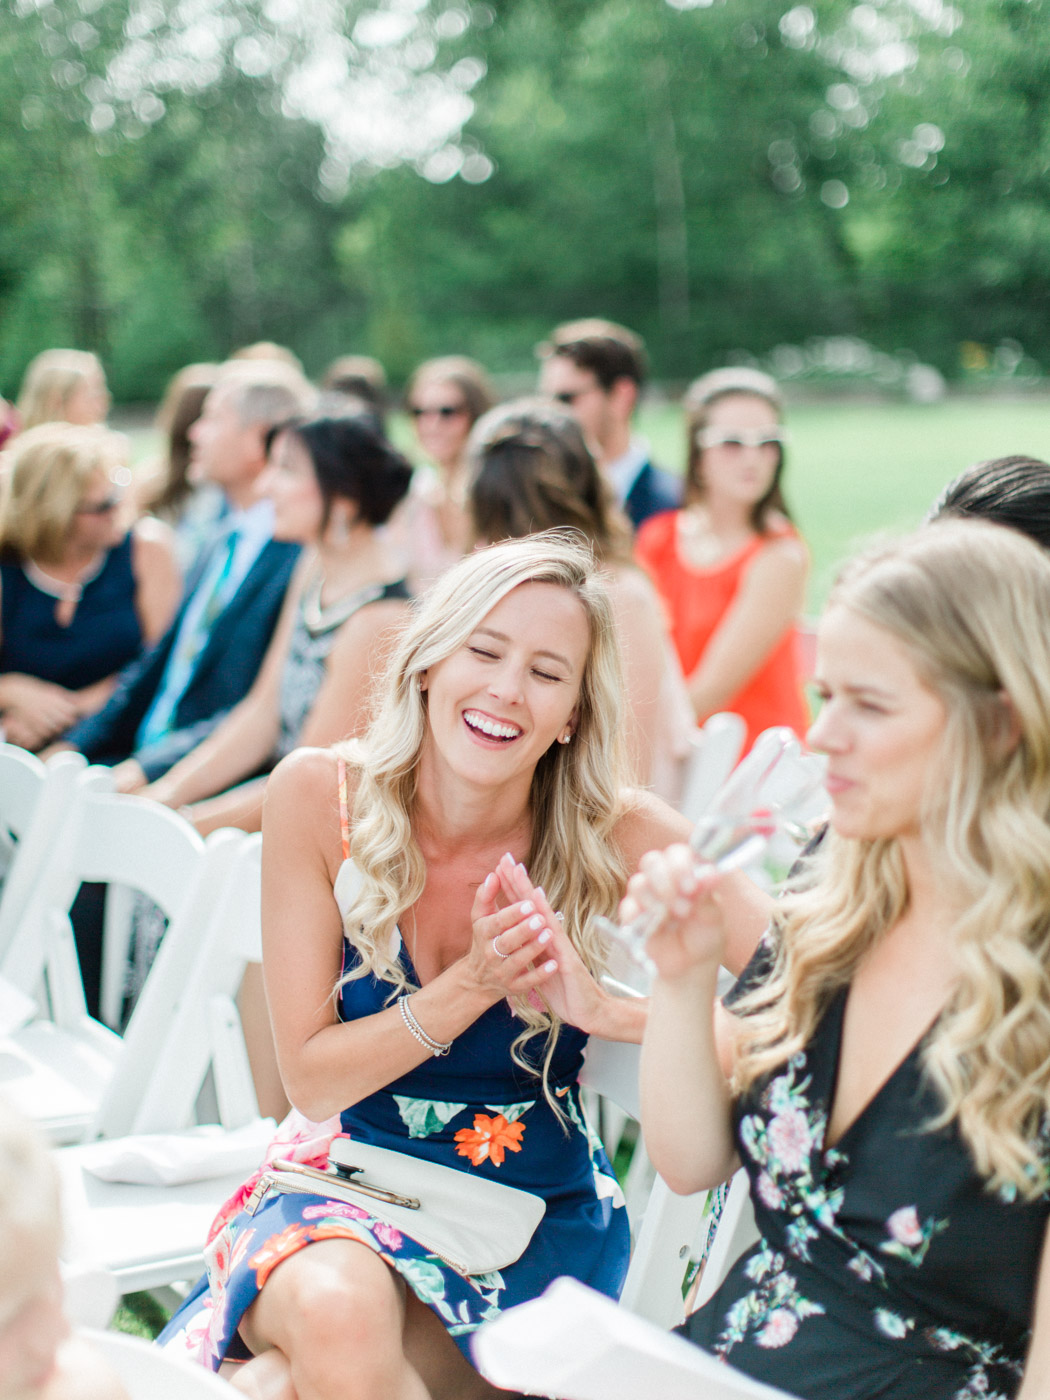 Documentary candid photograph from beautiful outdoor summer ceremony under floral arch in Muskoka.  Captured at the J.W. Marriott Rosseau by Muskoka wedding photographer Corynn Fowler Photography.